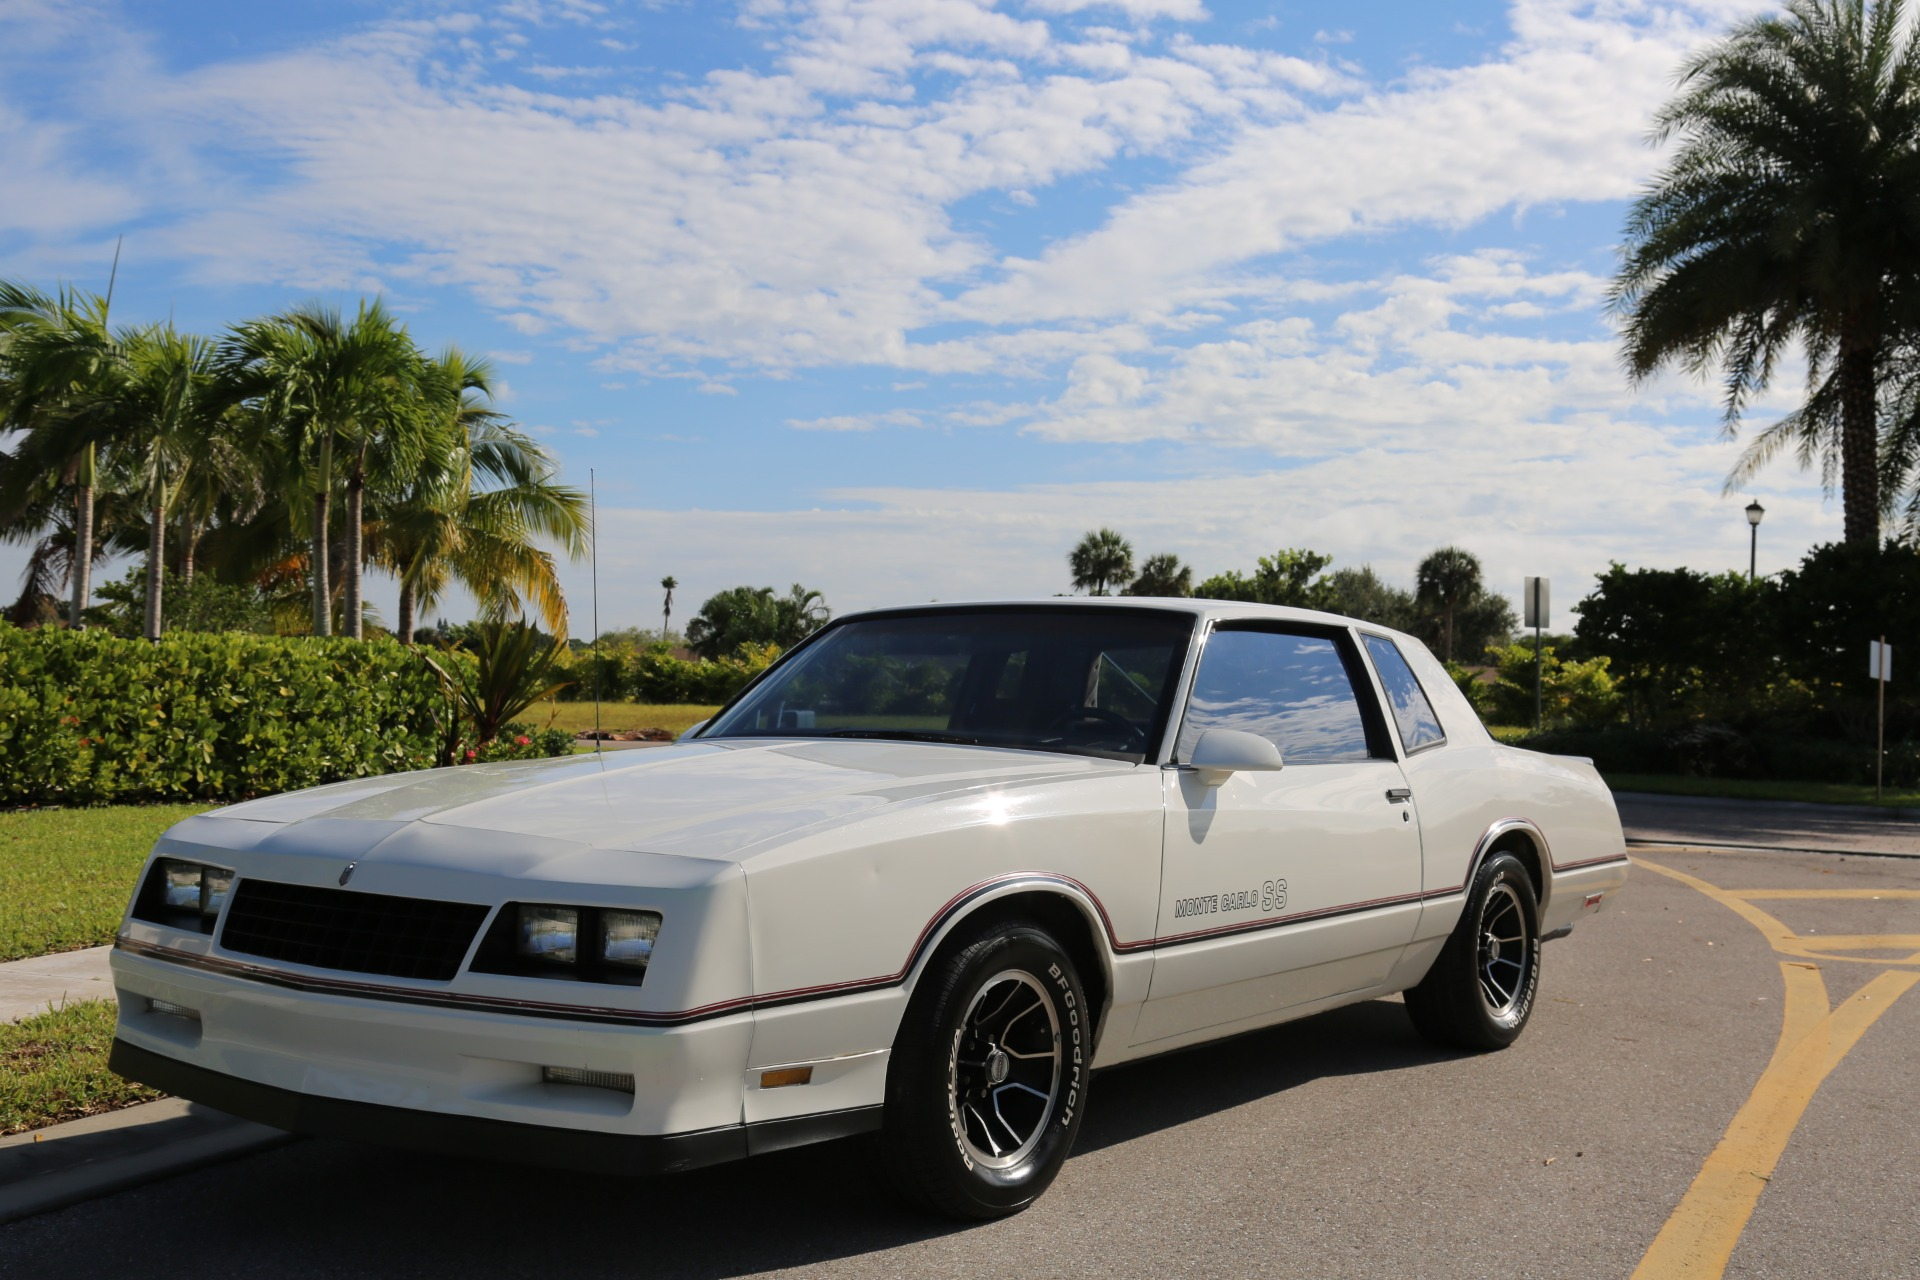 Used 1986 Chevrolet Monte Carlo SS Aero for sale $13,000 at Muscle Cars for Sale Inc. in Fort Myers FL 33912 7